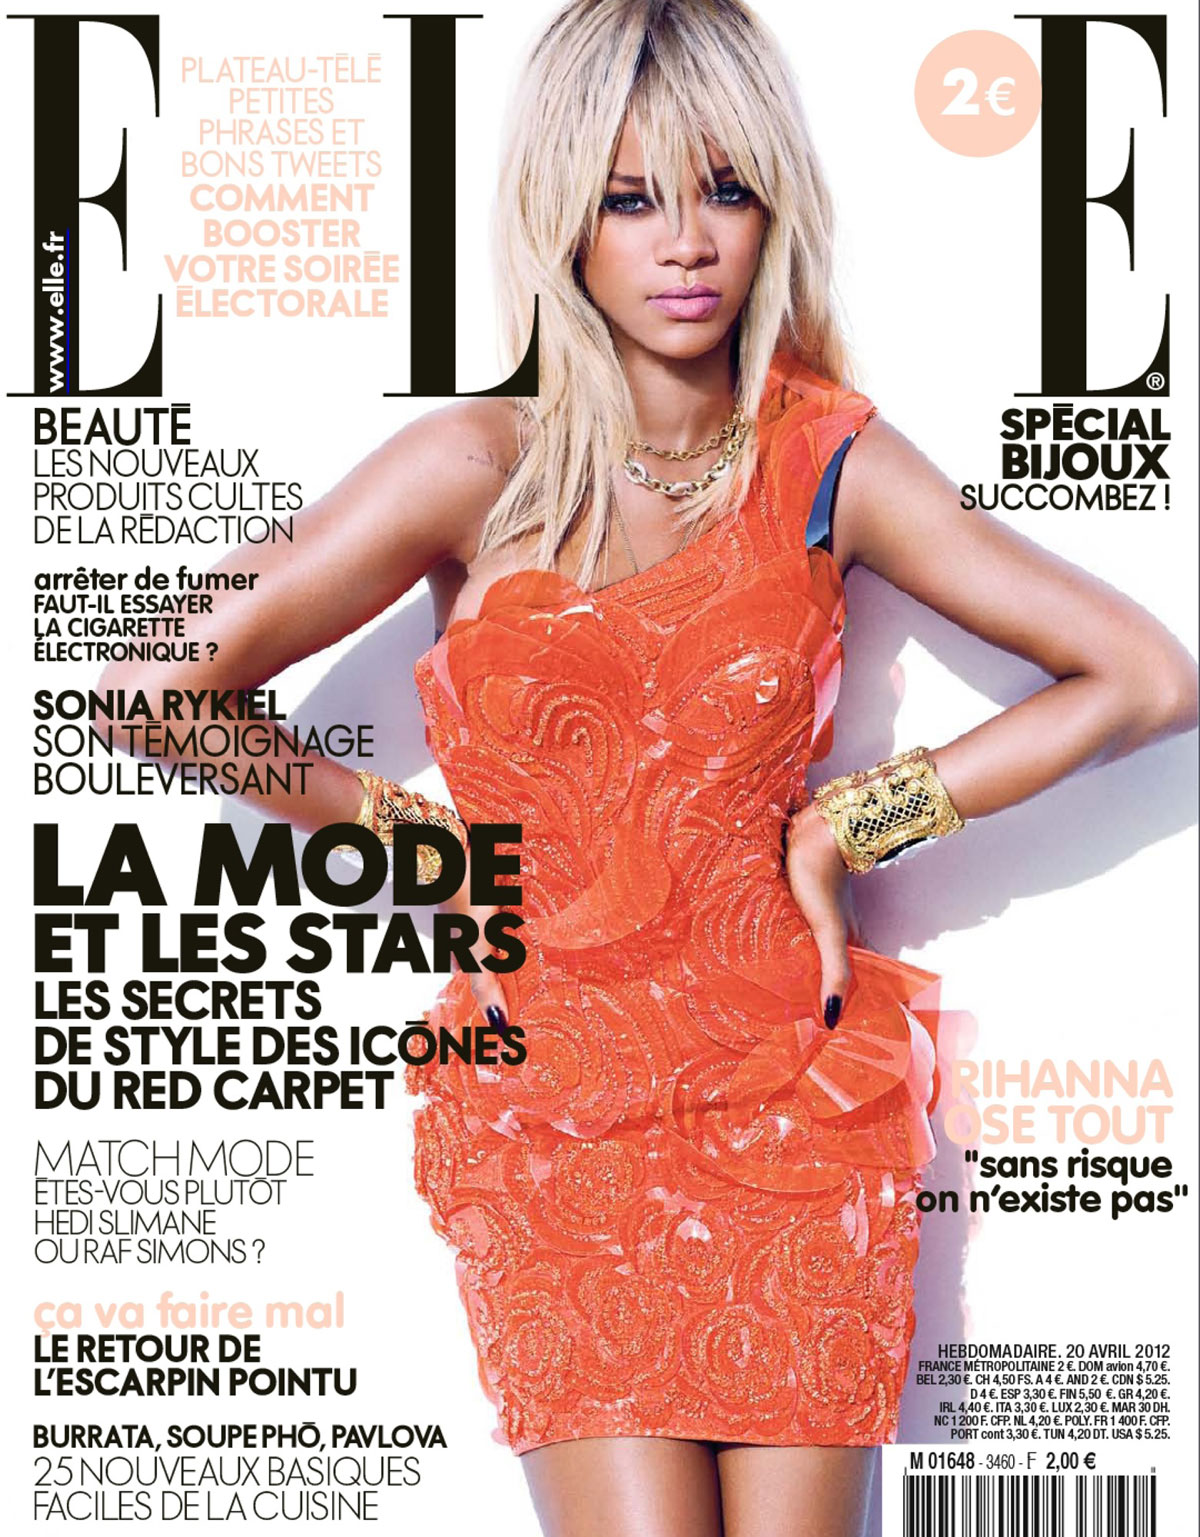 RIHANNA In Elle Magazine, France April 2012 Issue